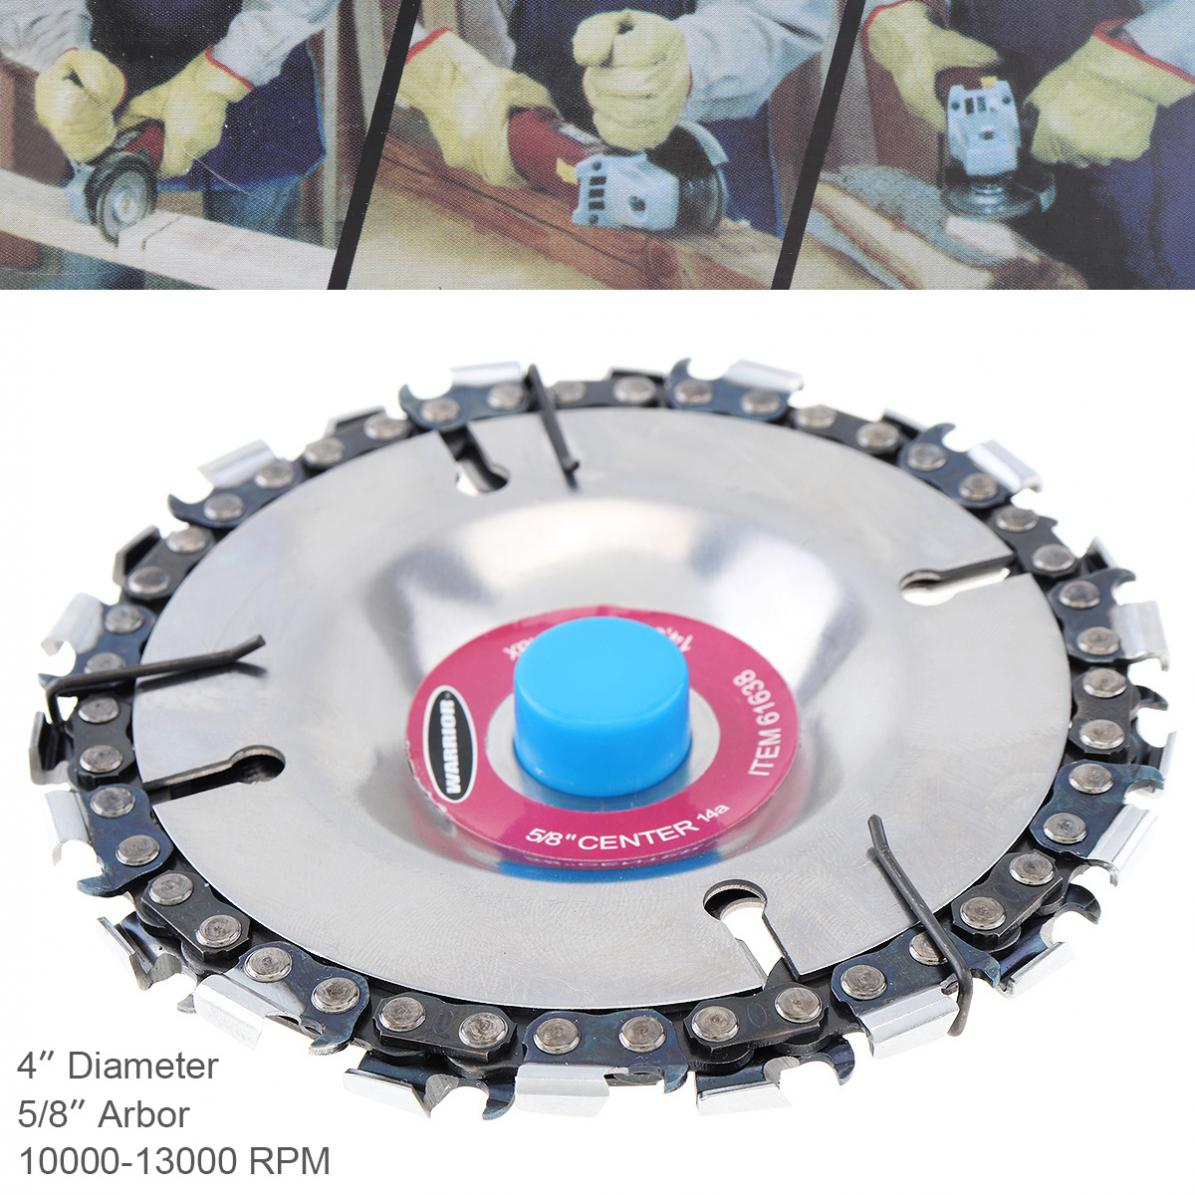 4 Inch Circular Saw Blade 22 Tooth Durable Angle Grinder Chain Tray Disc Cutter Wood Grooved Woodworking Chain Disc